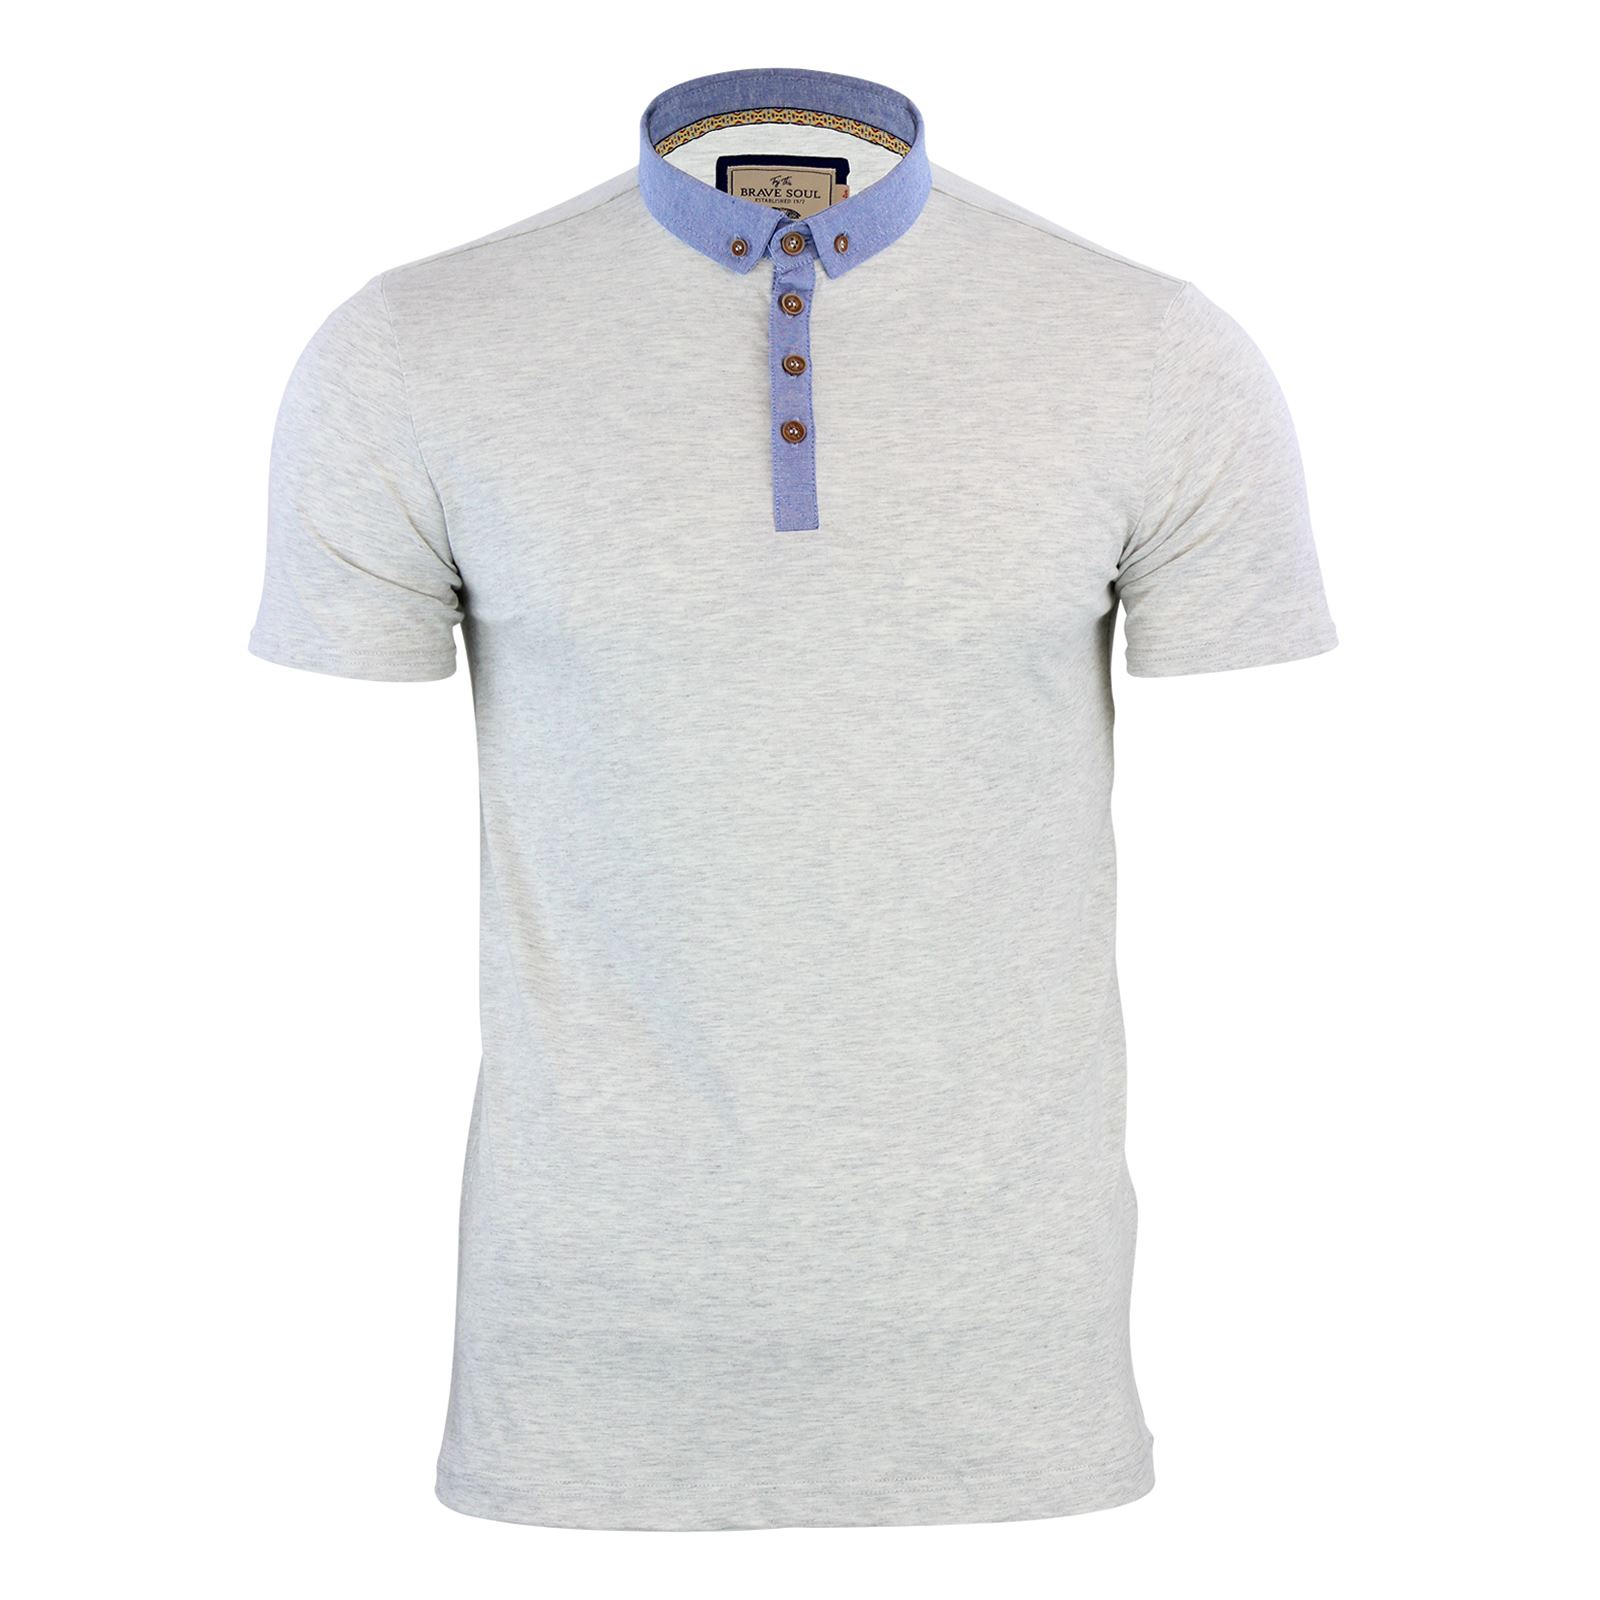 Brave-Soul-Glover-Mens-Polo-T-Shirt-Cotton-Collared-Short-Sleeve-Casual-Top thumbnail 8